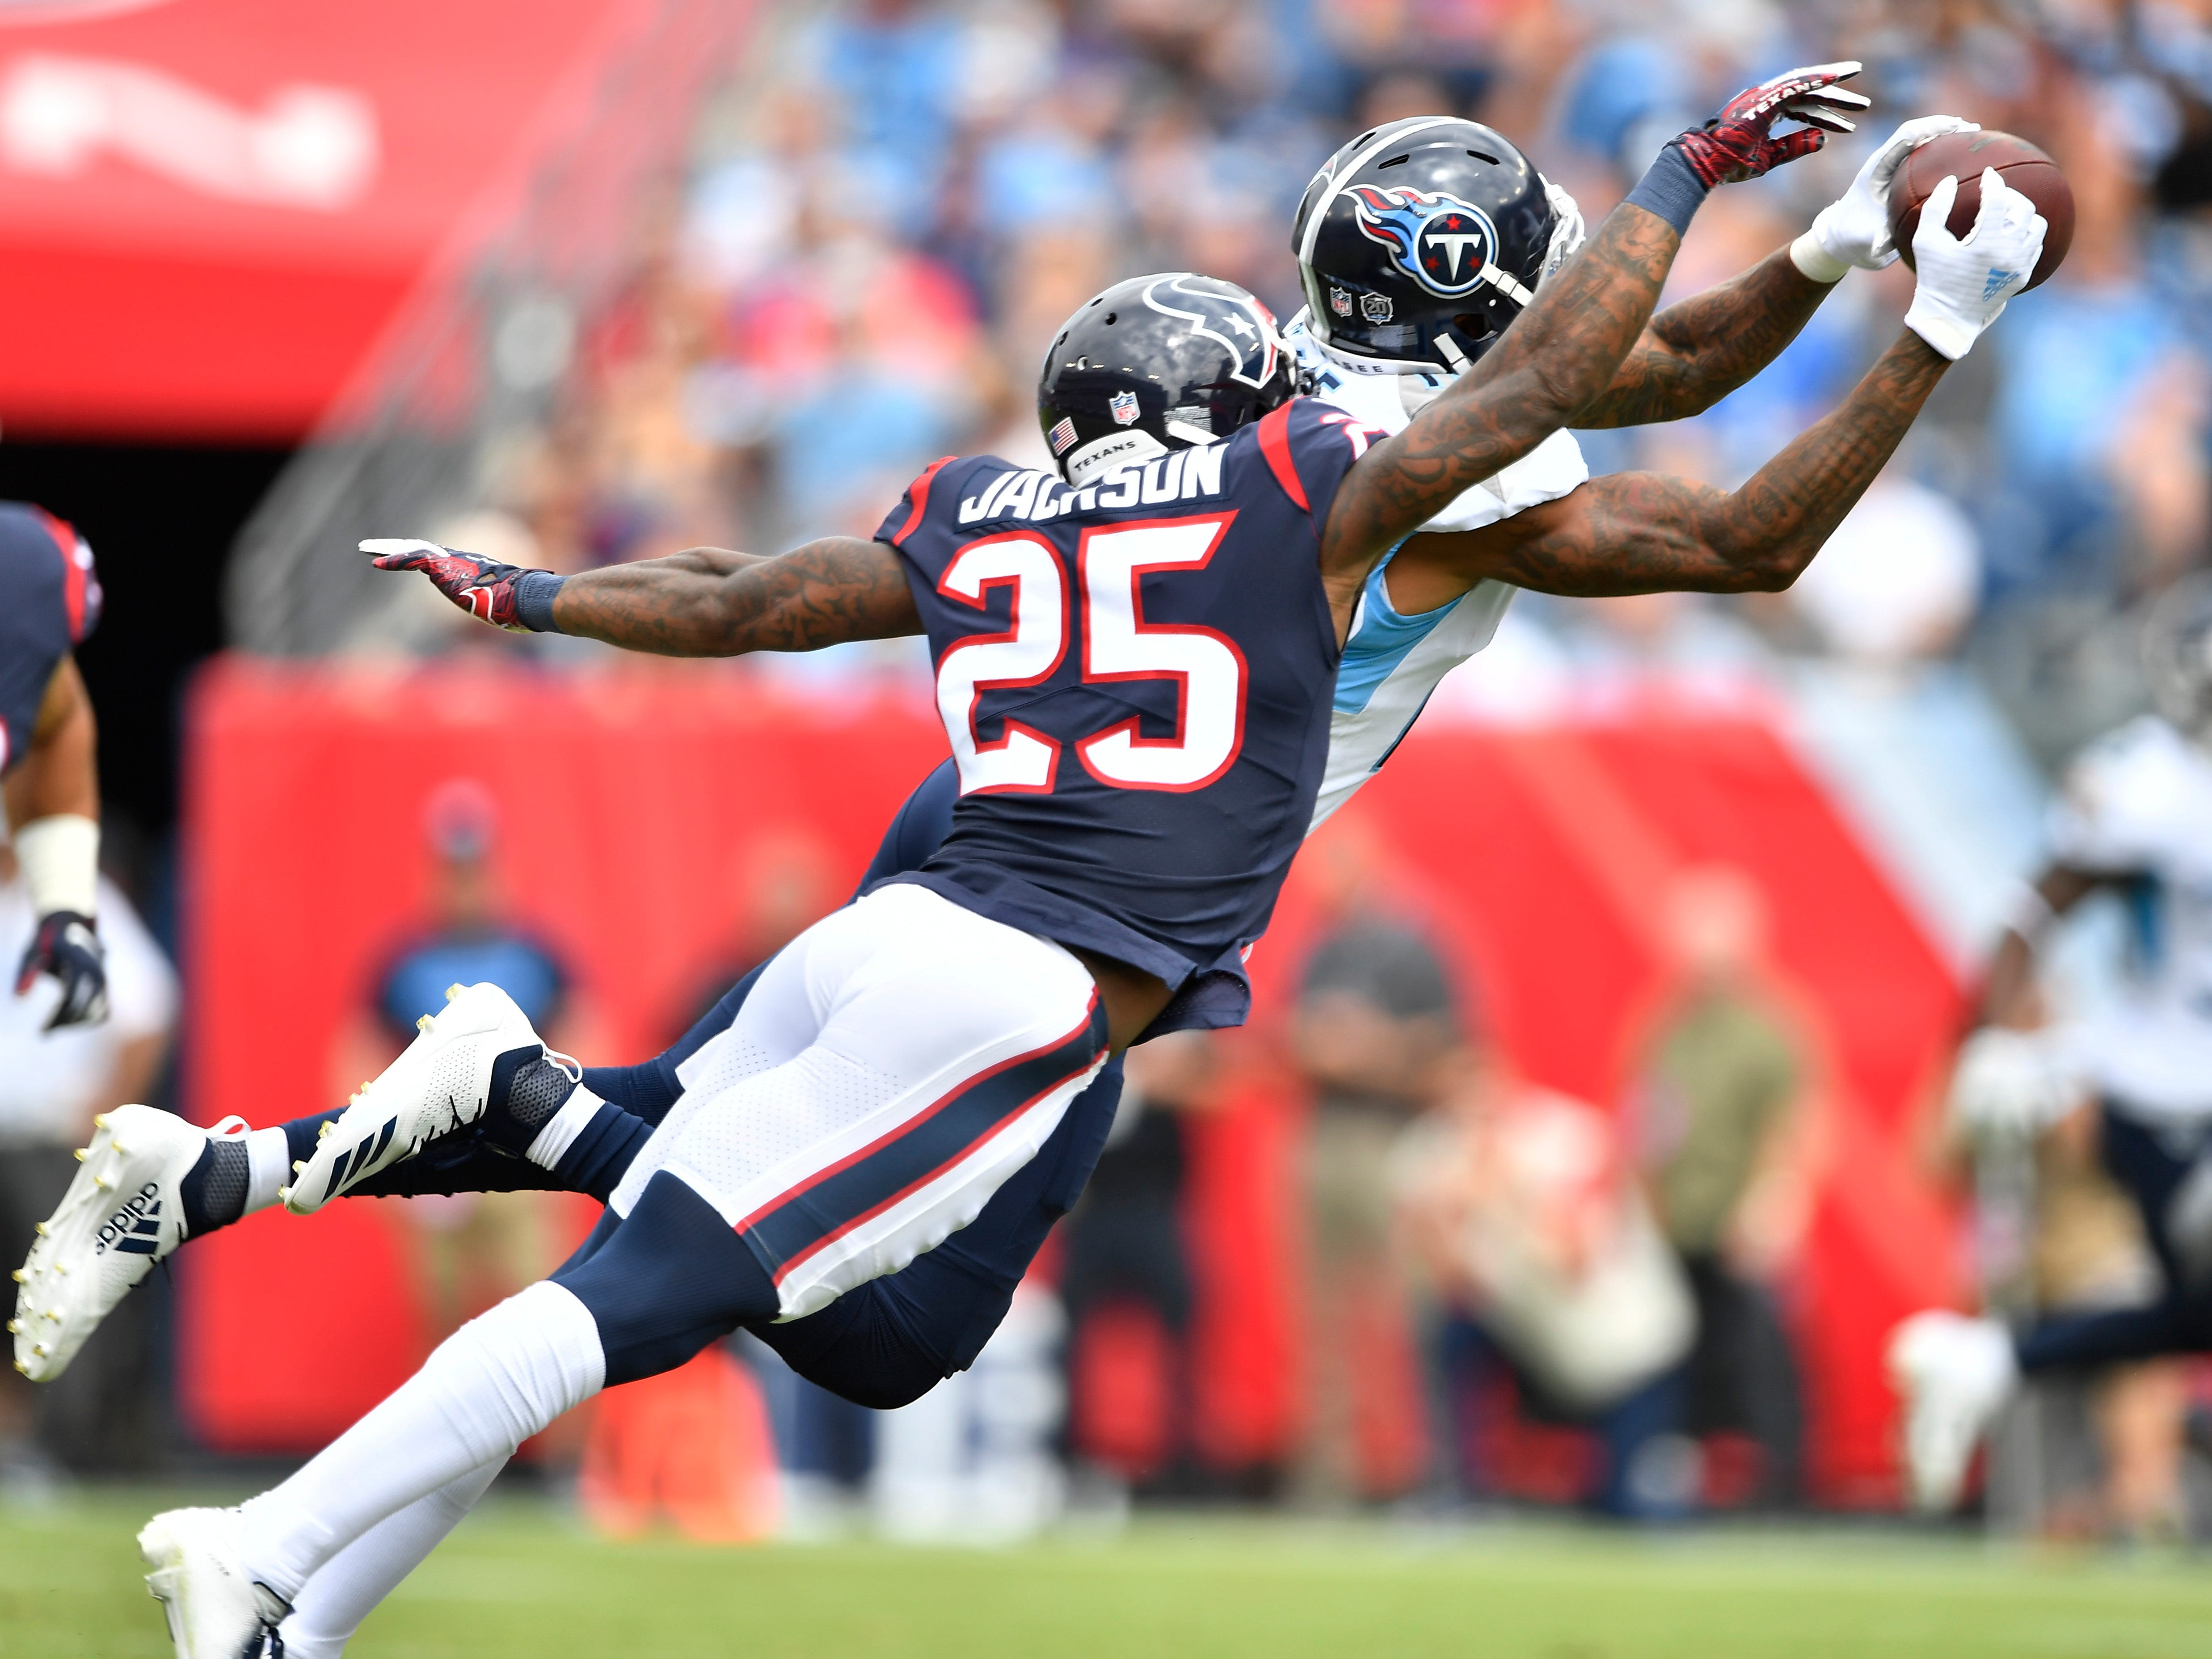 Texans safety Kareem Jackson (25) breaks up a pass intended for Titans wide receiver Tajae Sharpe (19) in the first quarter at Nissan Stadium Sunday, Sept. 16, 2018, in Nashville, Tenn.